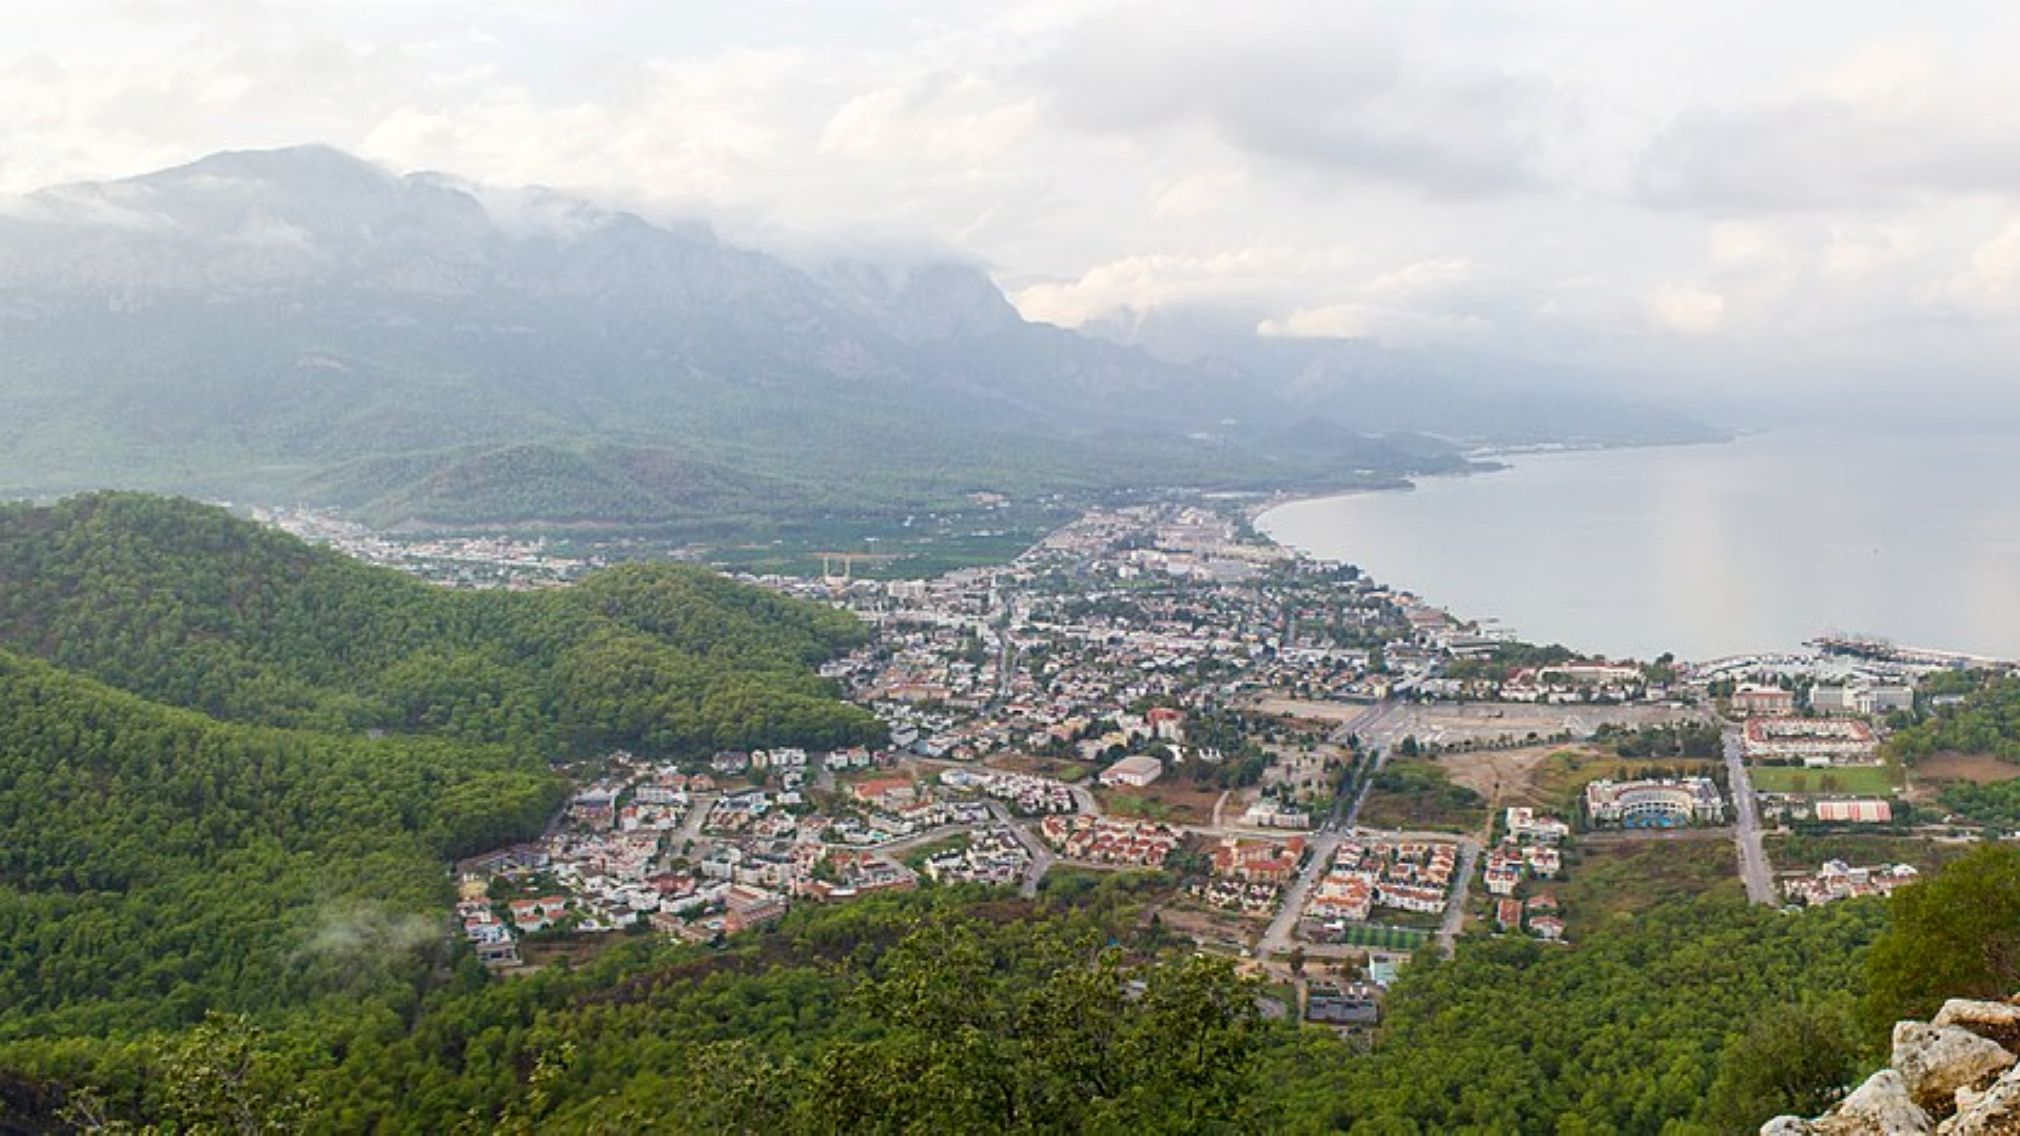 Aerial view of Kemer, Turkey